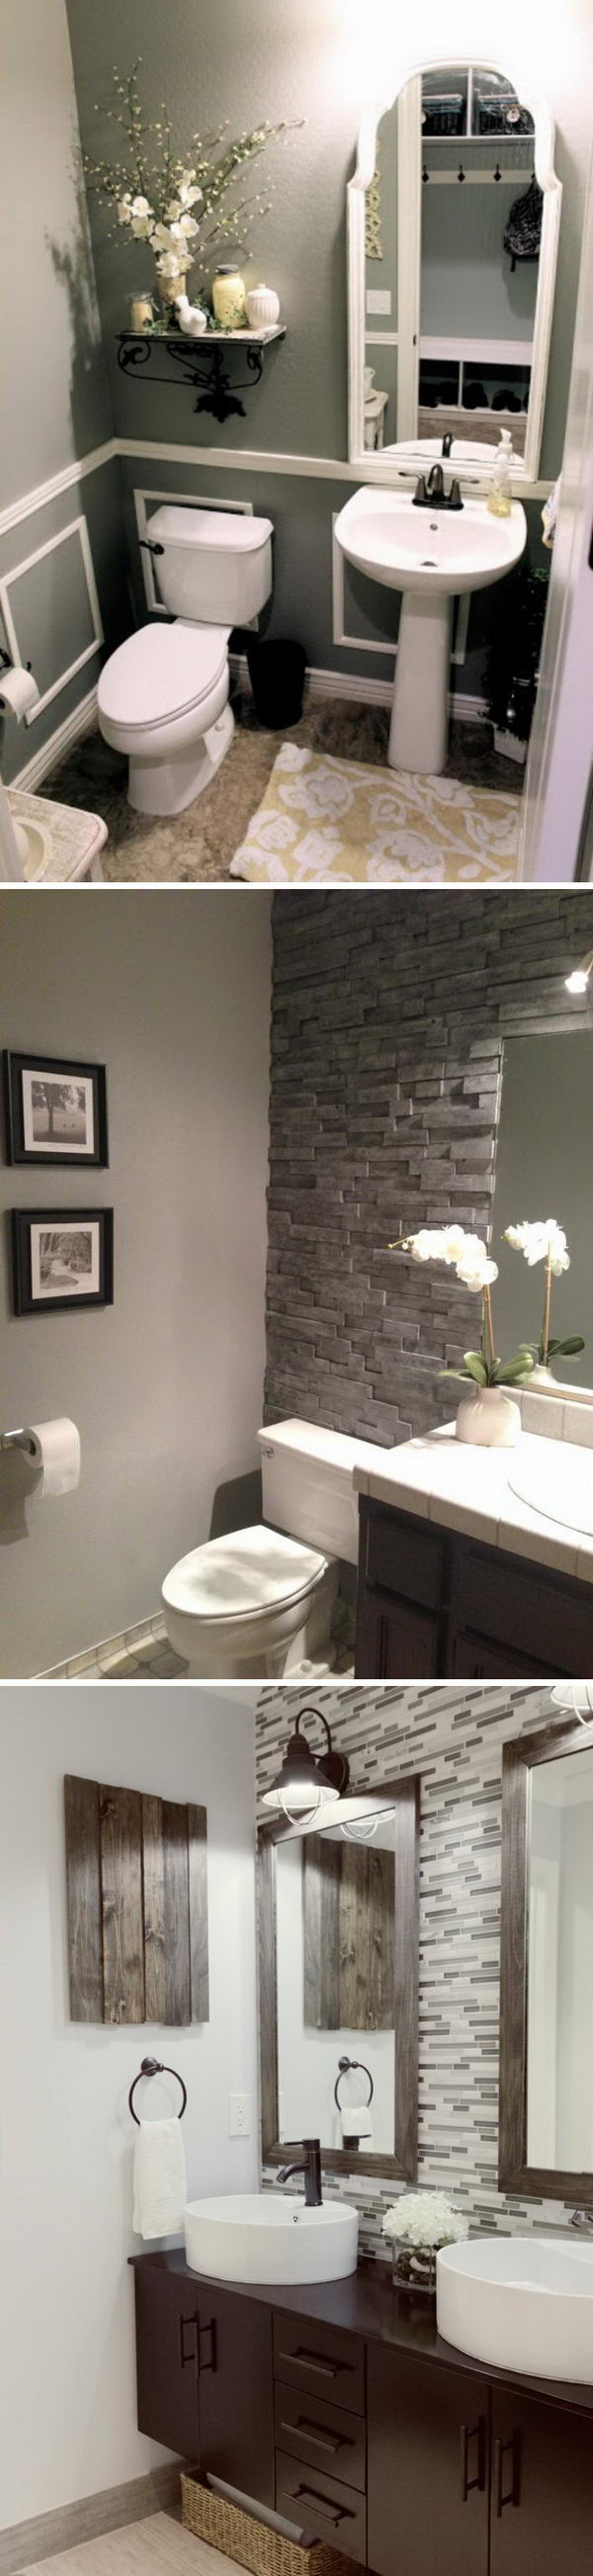 Awesome Bathroom Remodeling Ideas.